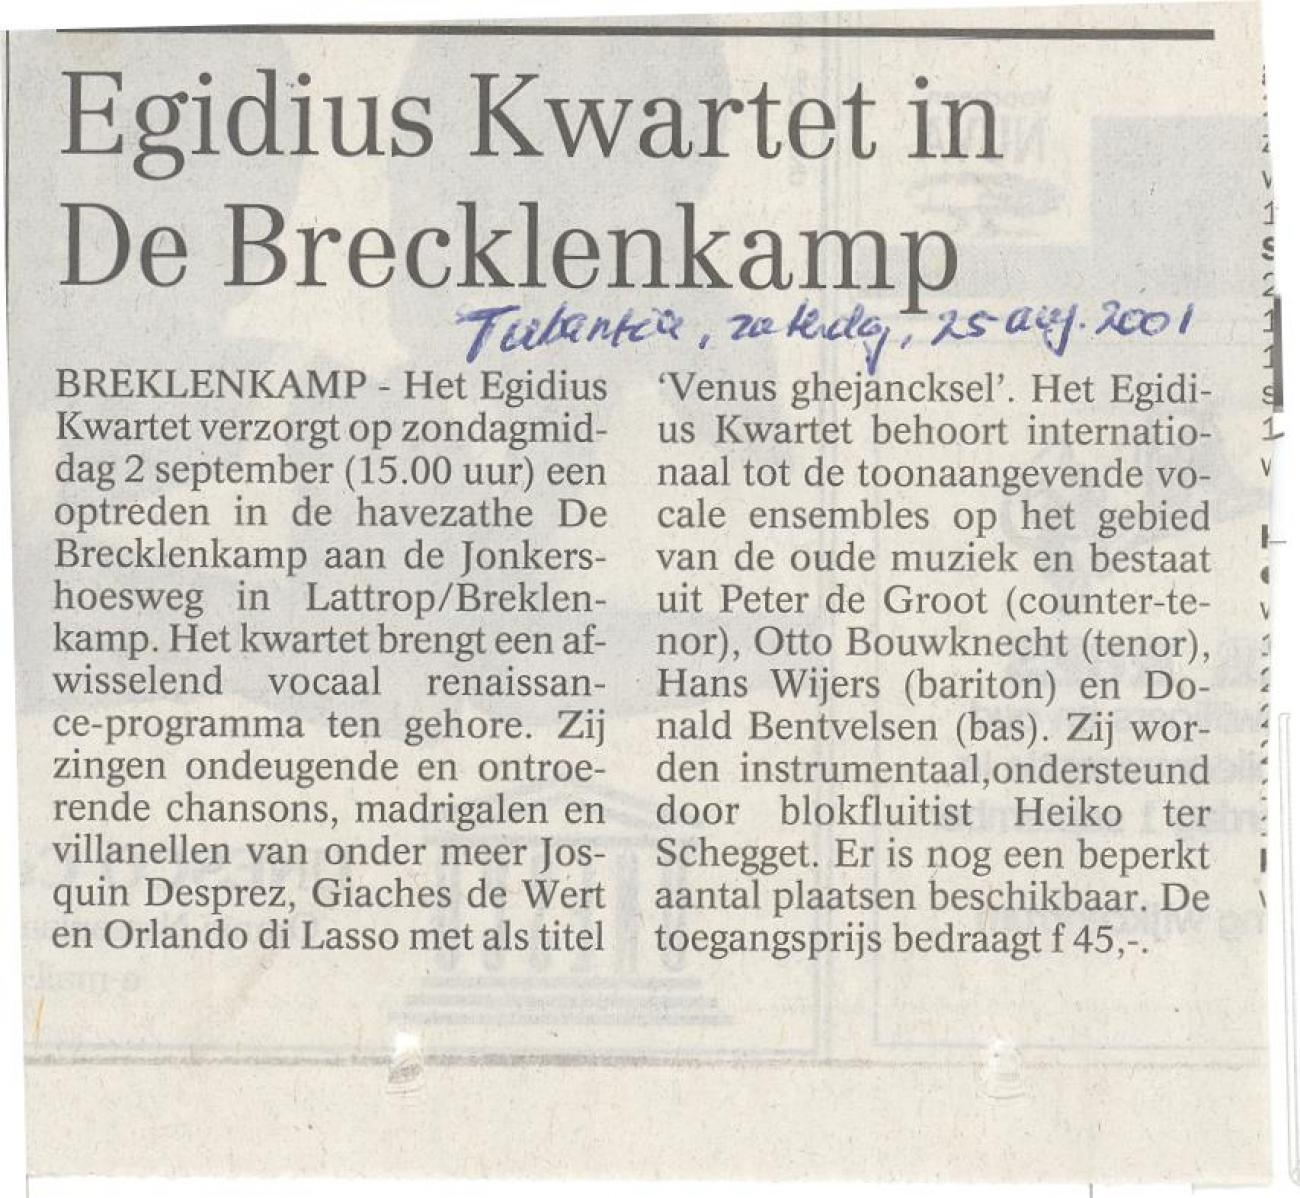 Egidius Kwartet in De Brecklenkamp